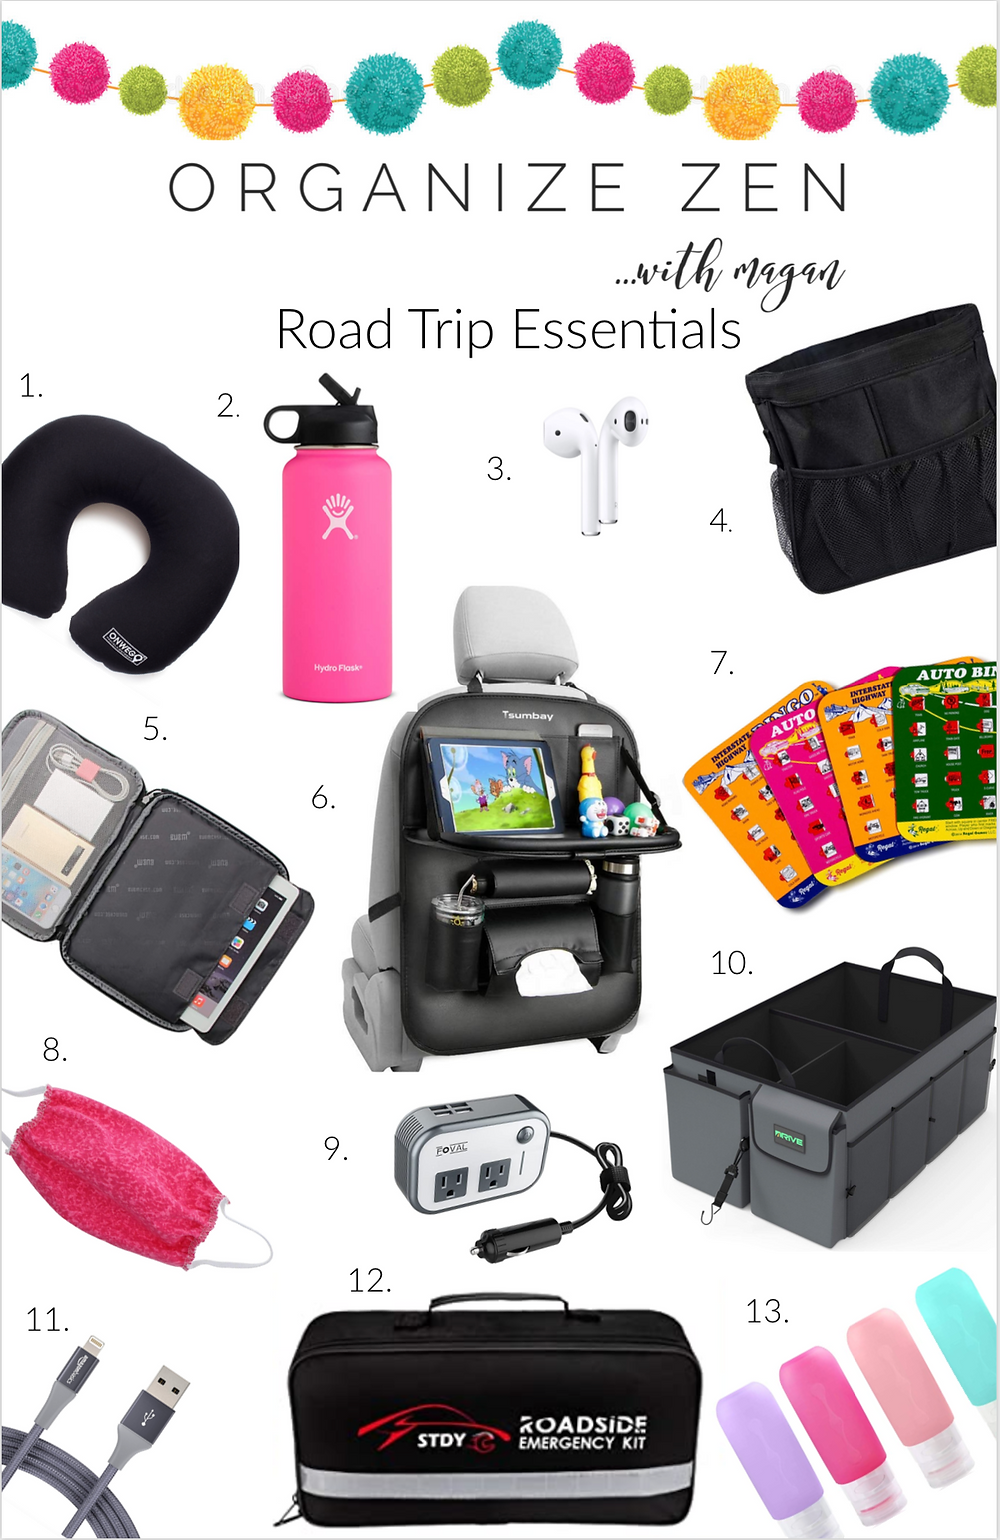 Photos and List of Road Trip Essentials